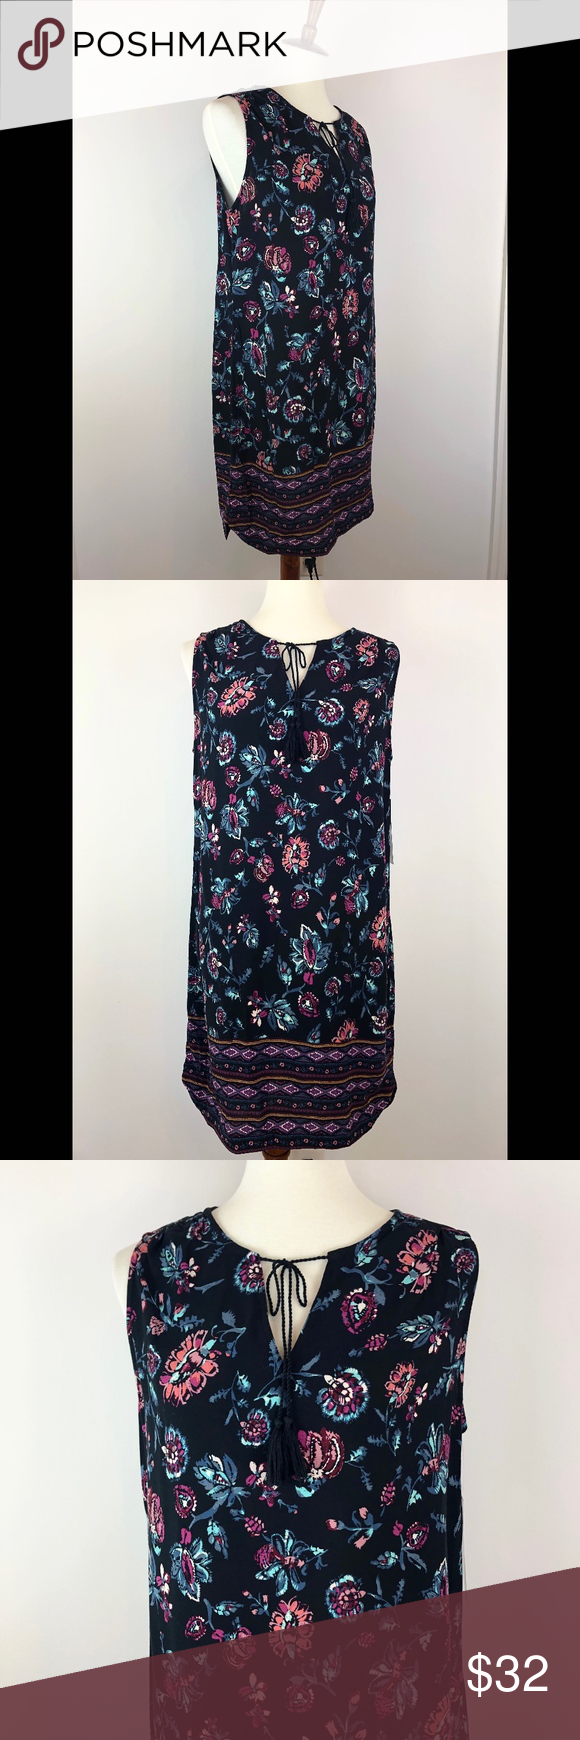 720e672ba7 NWT beachlunchlounge Kayla Tassel Shift Dress Brand new with tags!  Sleeveless shift dress with tassels